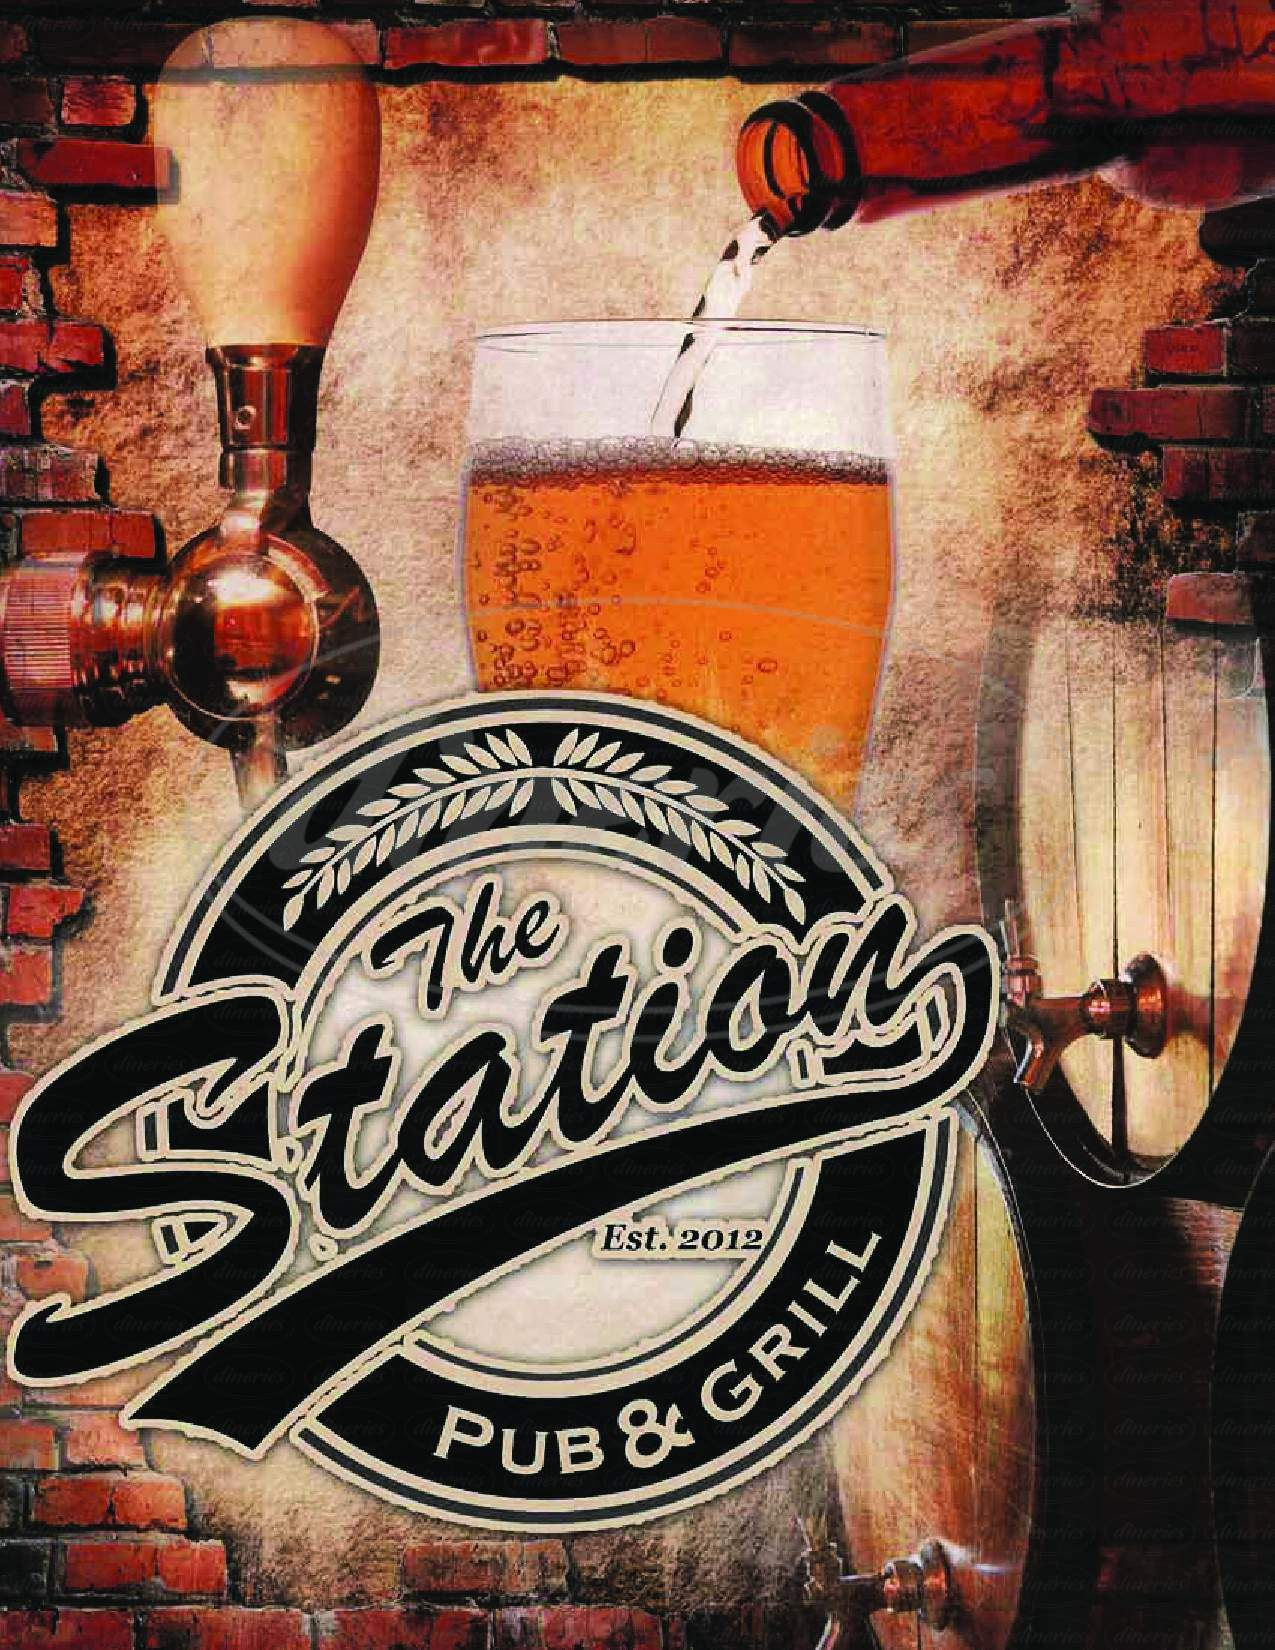 menu for The Station Pub & Grill